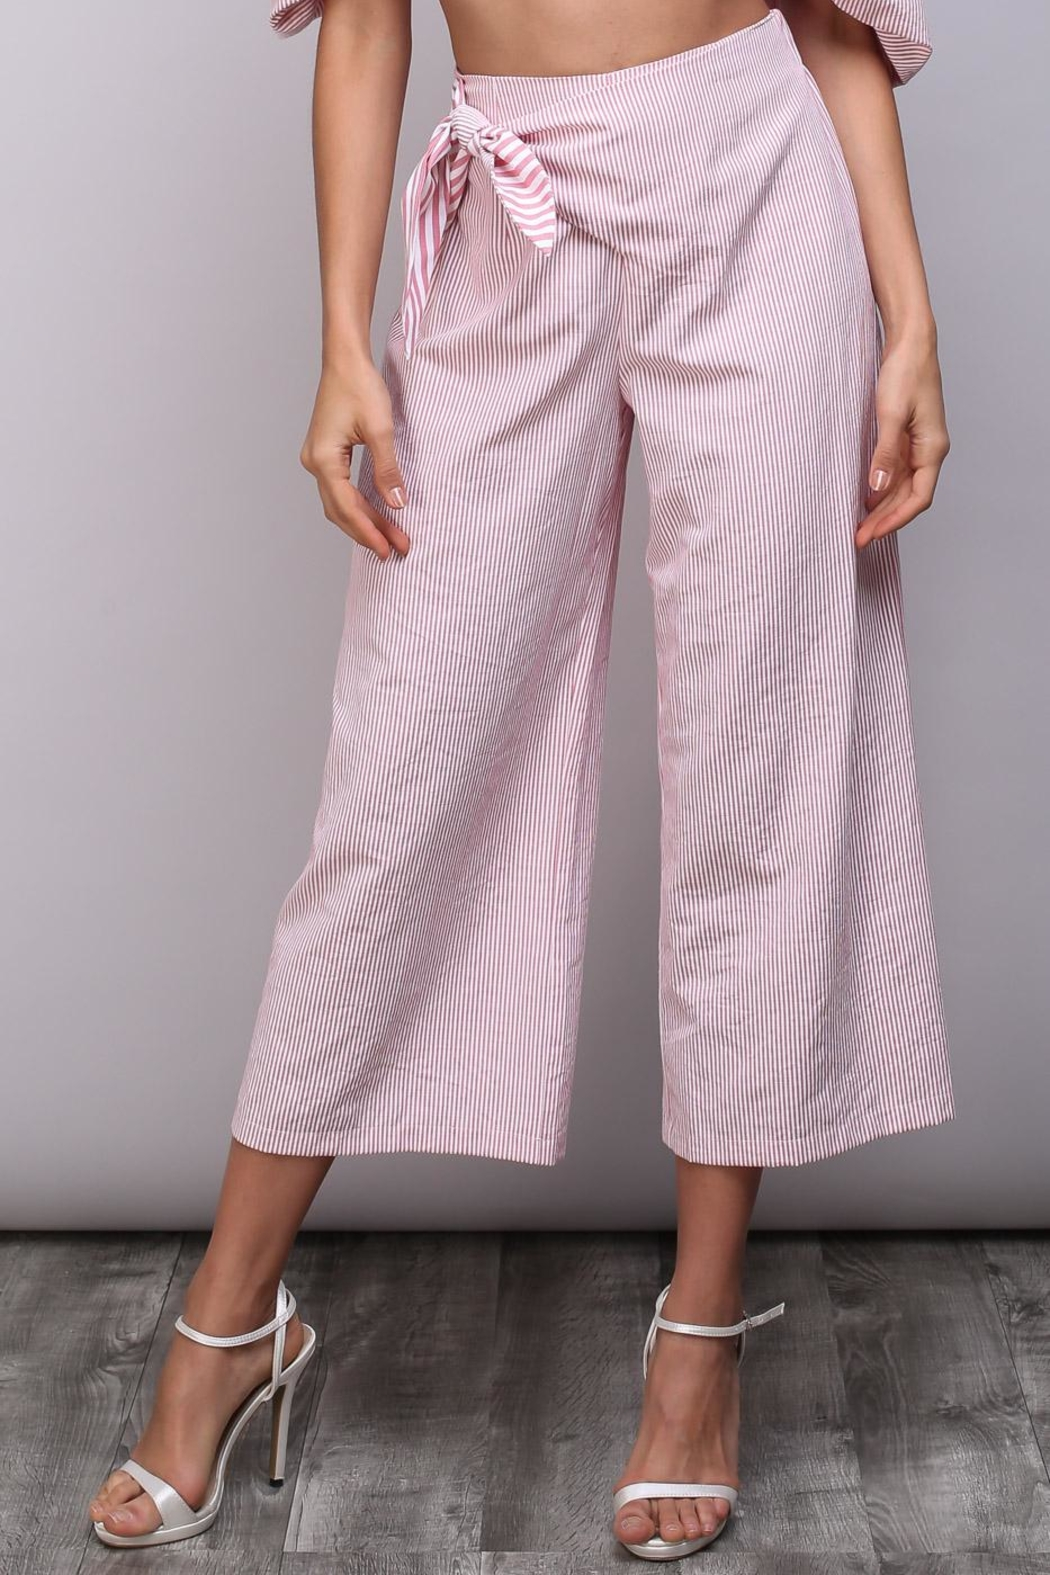 Do & Be Red Stripe Pants - Main Image